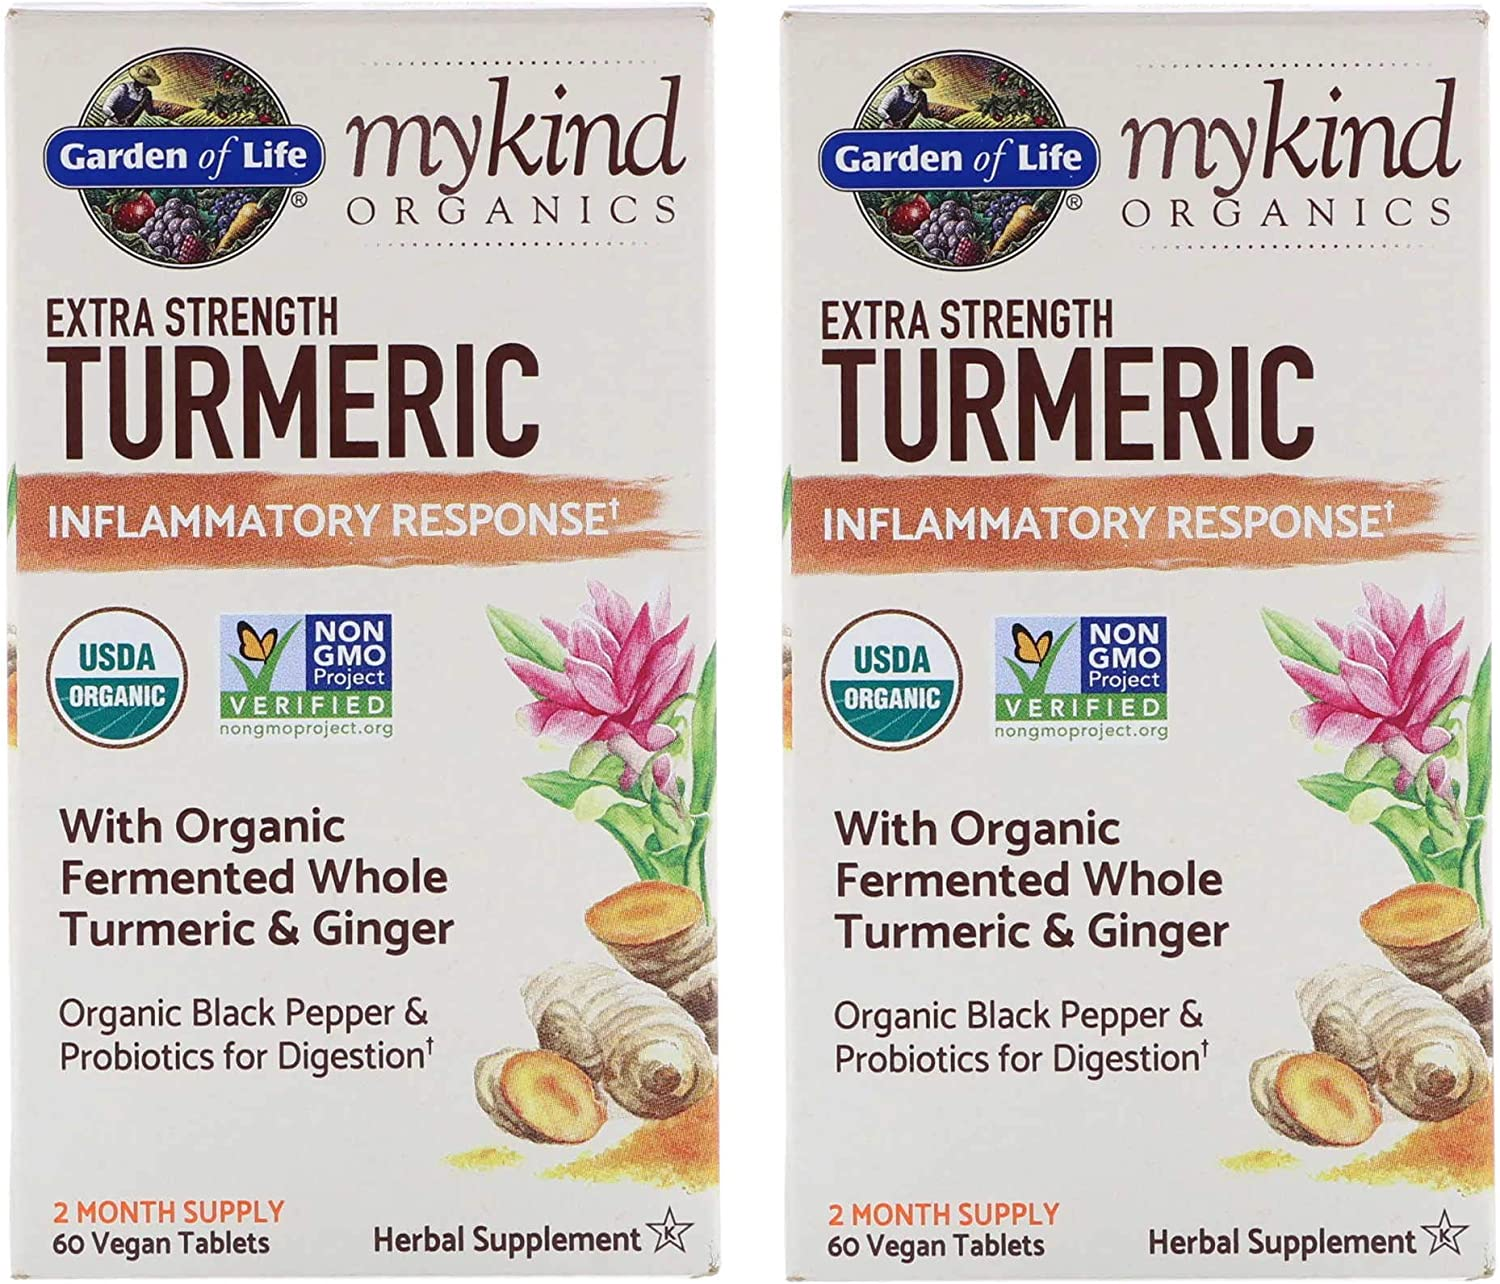 MyKind Organics Extra Strength Turmeric Inflammatory Response with Organic Fermented Whole Turmeric. Ginger, Organic Black Pepper and Probiotics for Digestion (60 Vegan Capsules) Pack of 2